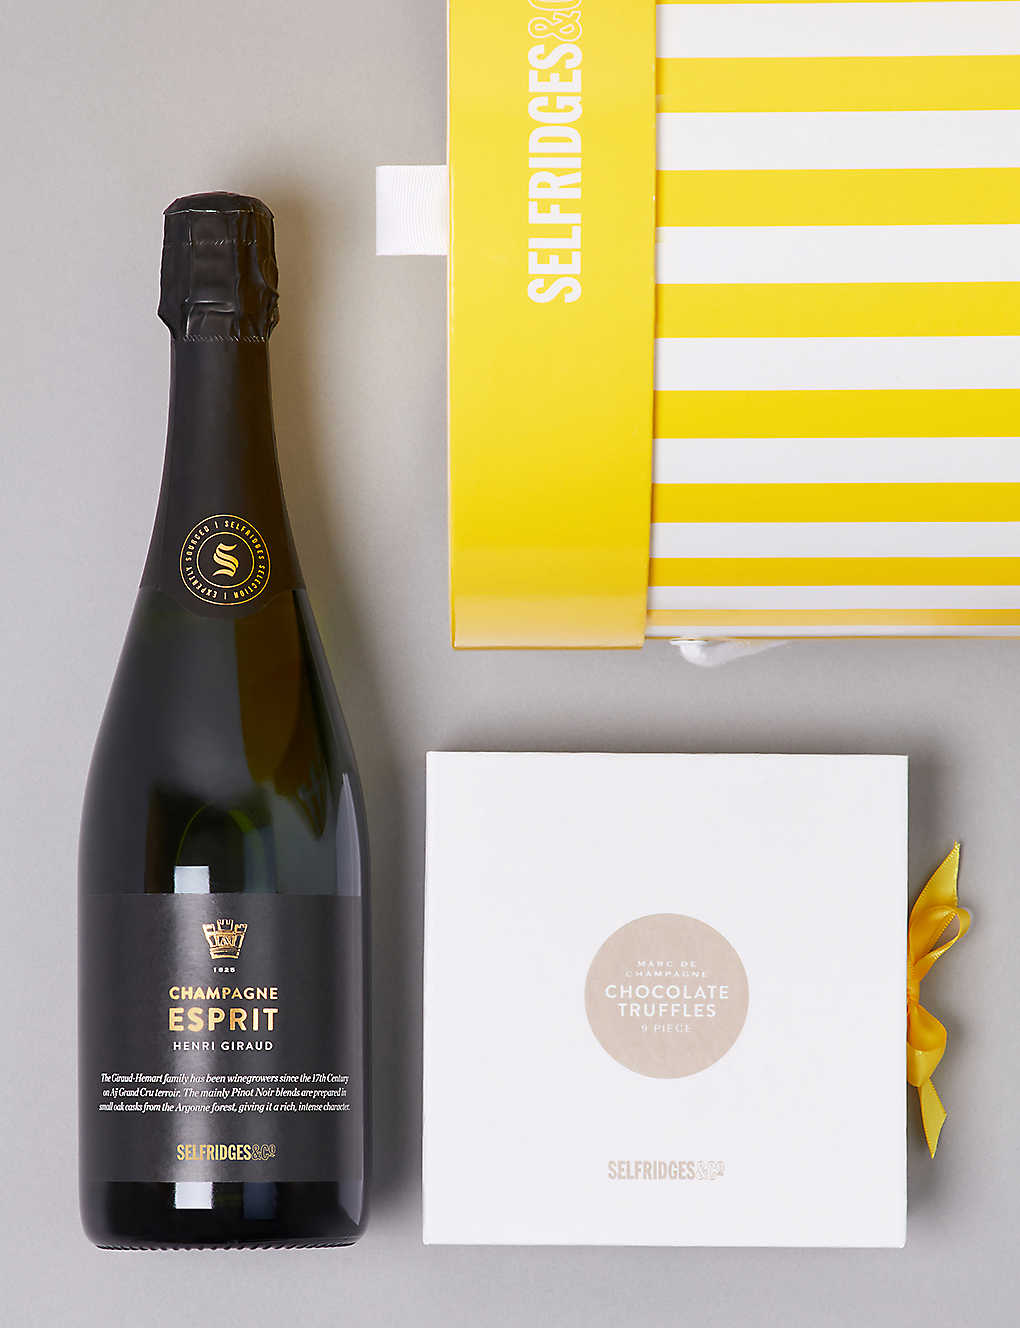 Unique food wine gifts foodhall selfridges selfridges selection champagne chocolates gift box negle Gallery